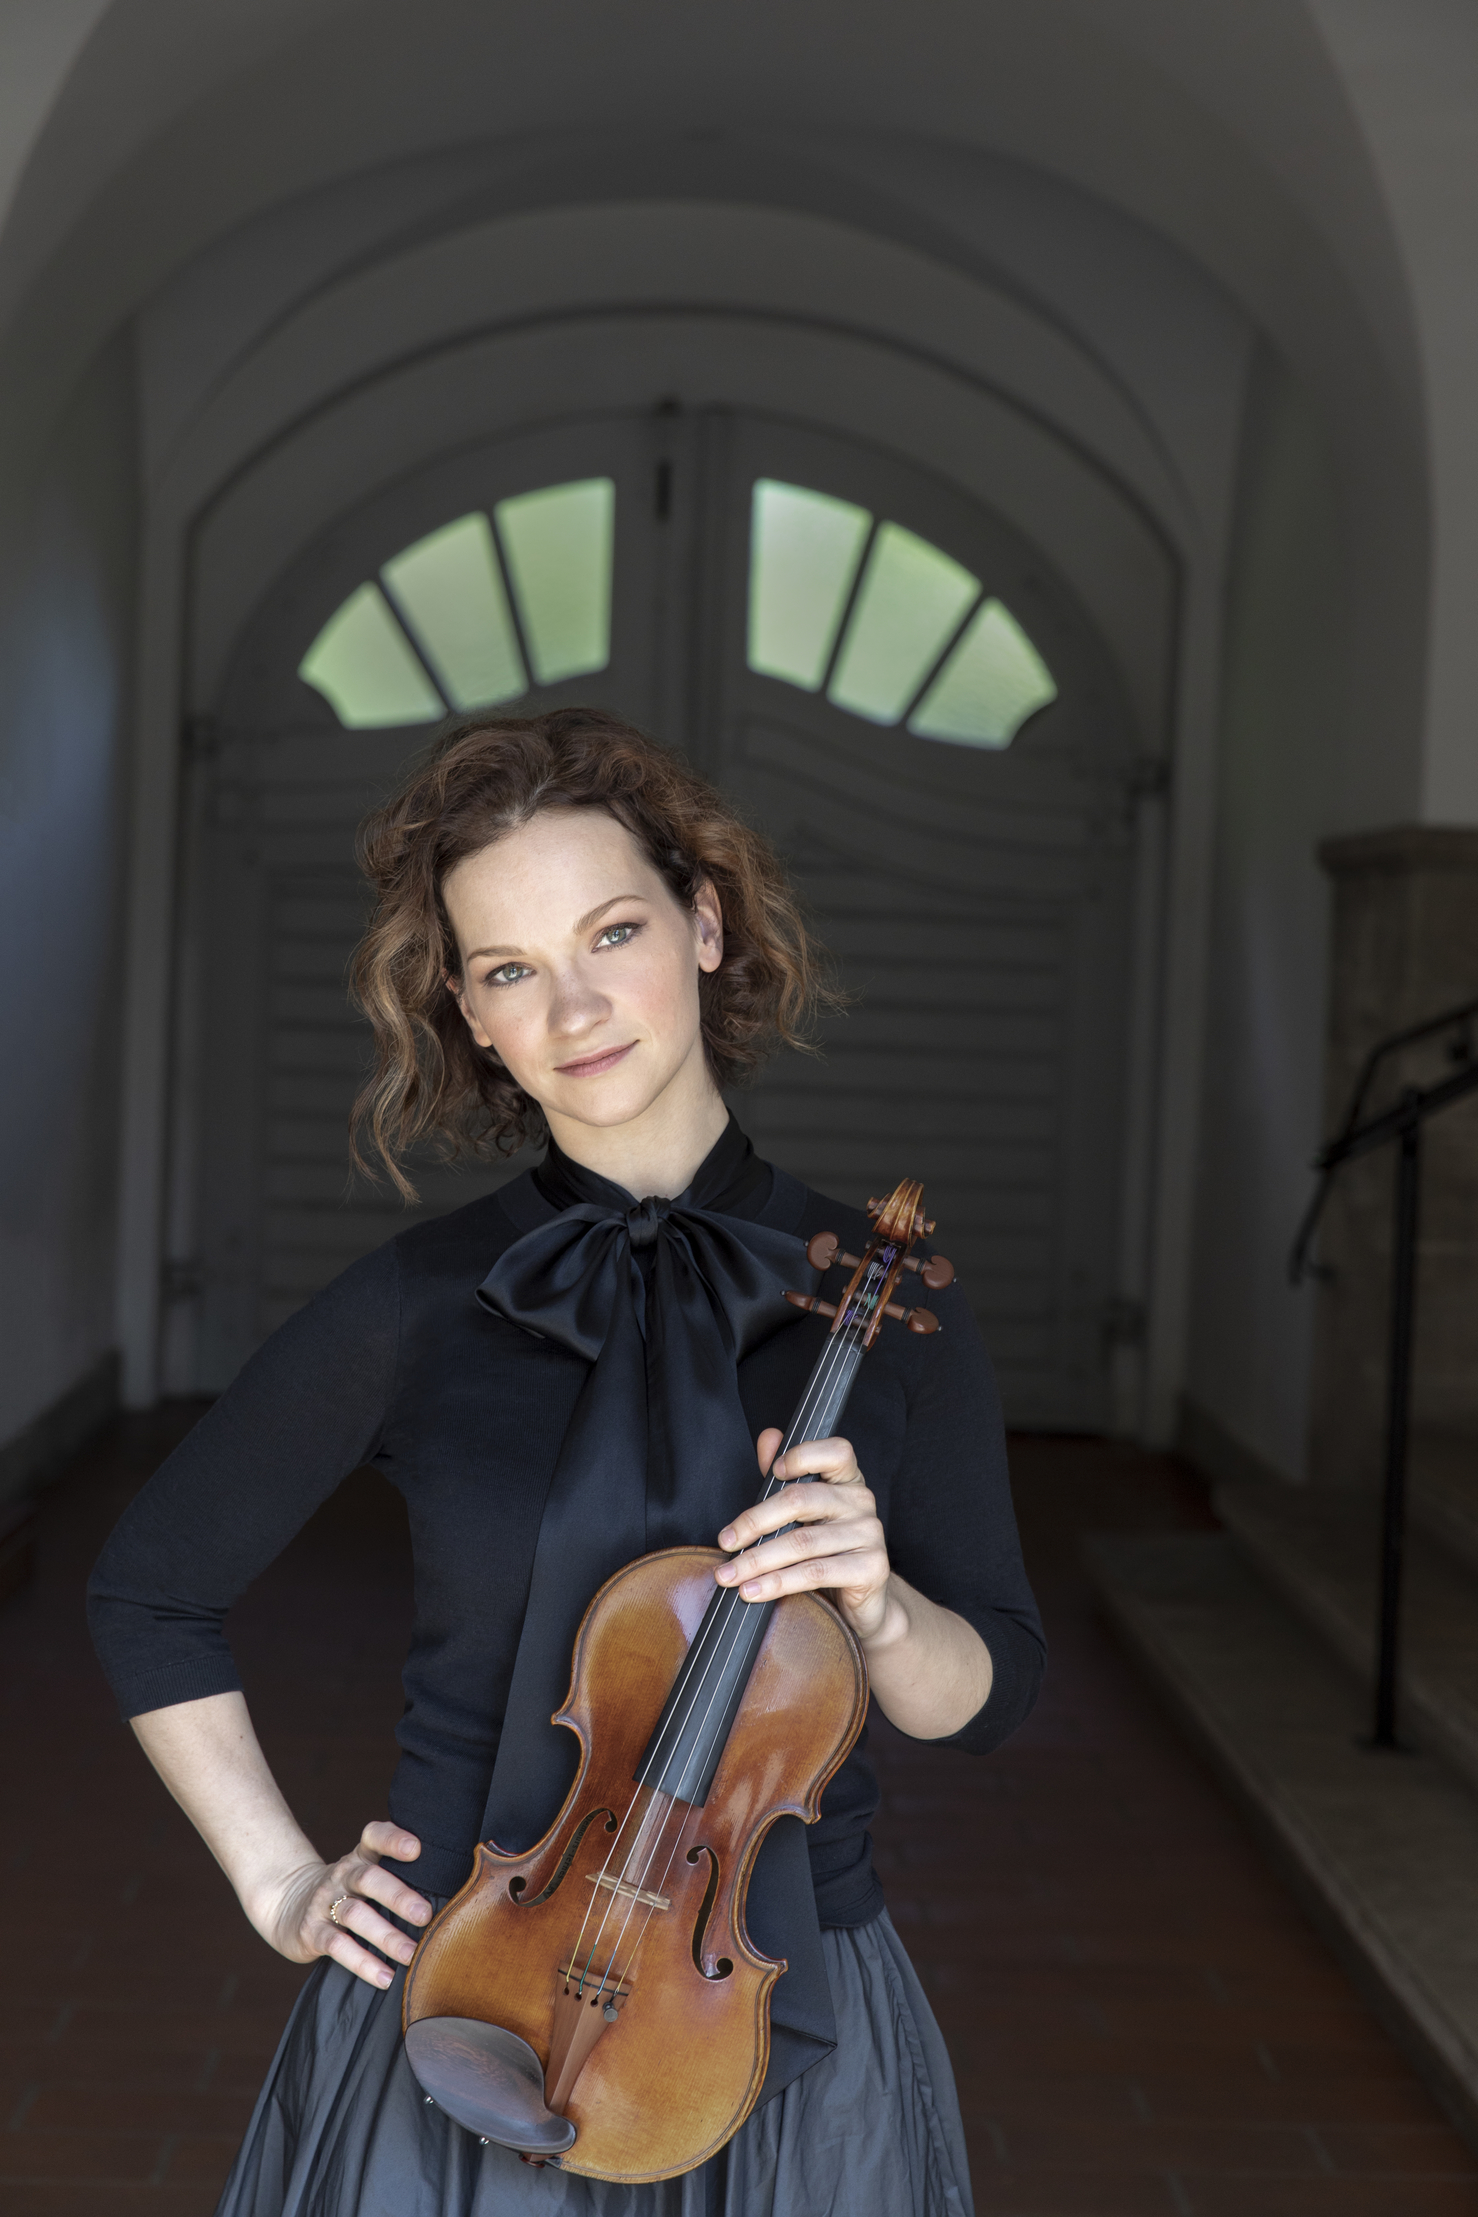 Caption: Hilary Hahn, Credit: Dana van Leeuwen